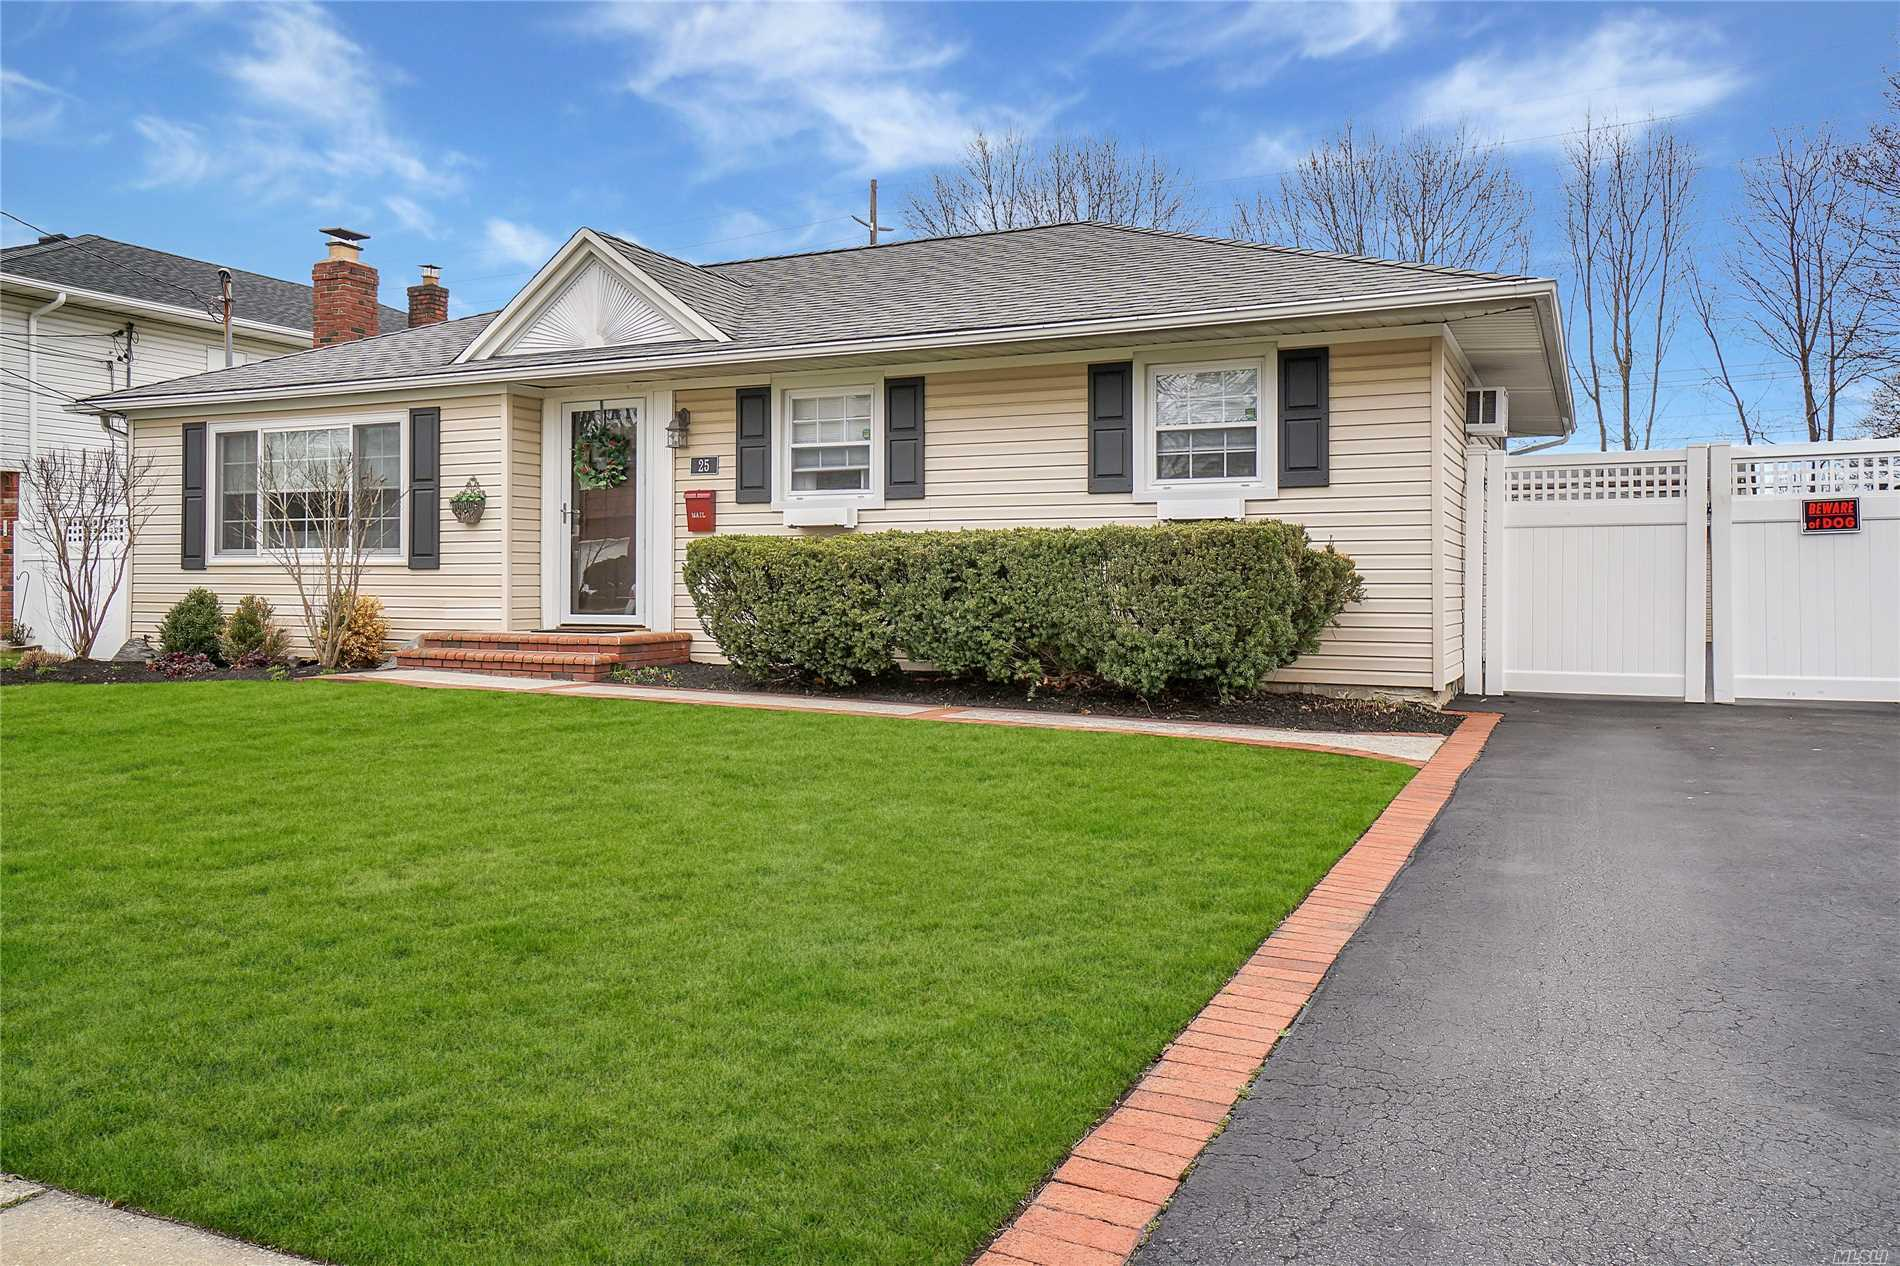 Lovely 3 bedroom, 1 bath ranch, hardwood floors throughout, formal dining room, living room with bay window, updated kitchen with Stainless fridge and stove,  bi-level deck in yard, full 1 car detached garage ;long driveway, big yard, large family room in basement , easy living. Lovely exterior - siding, roof, shutters, nicely landscaped.